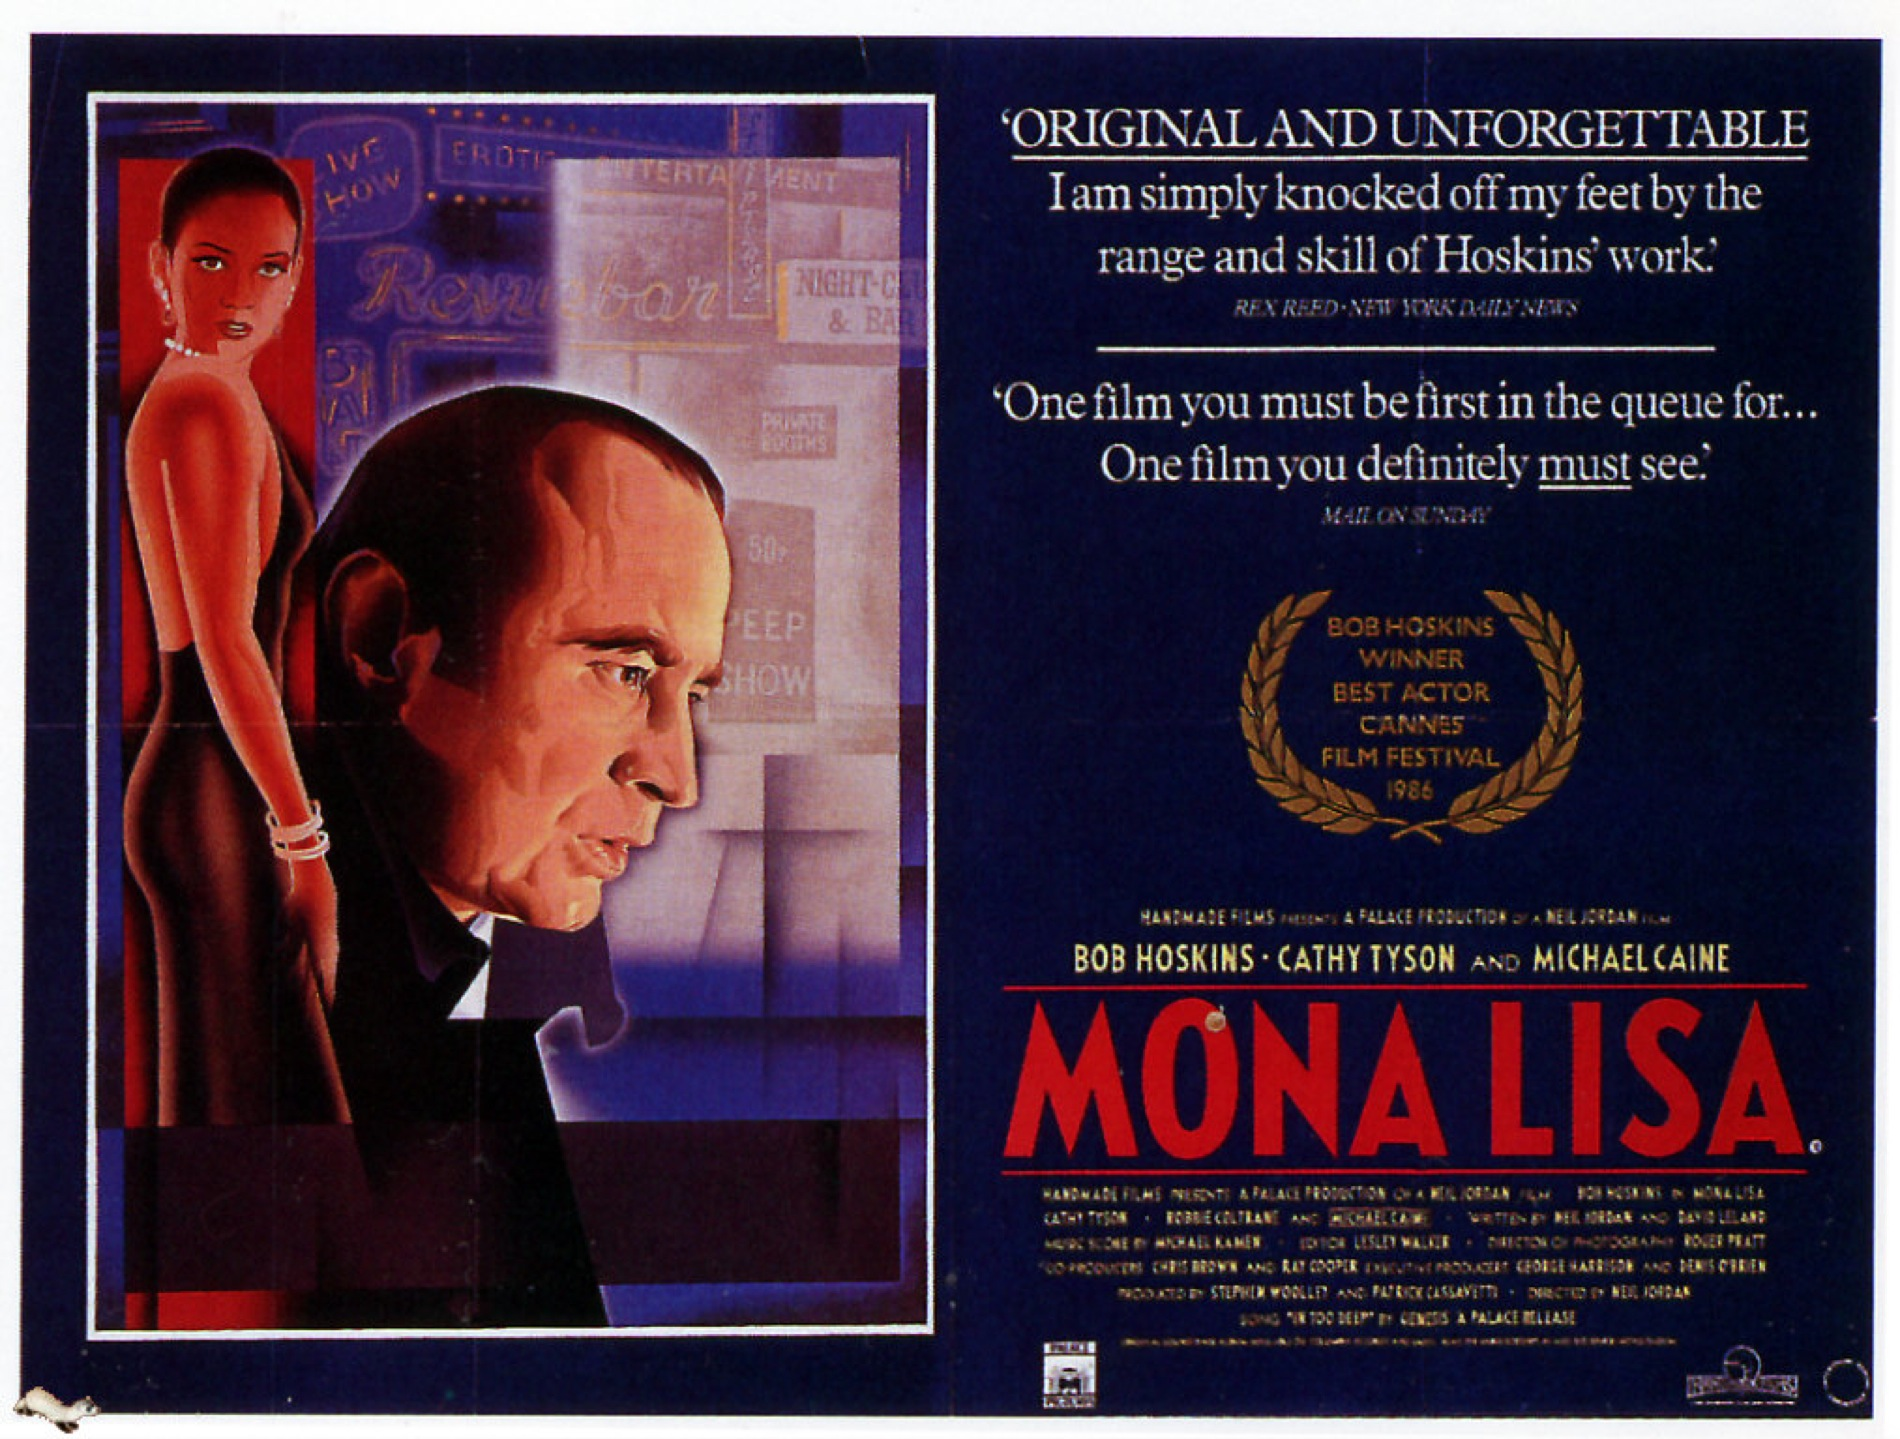 Mona Lisa' (1986): Out of the Past | The Young Folks